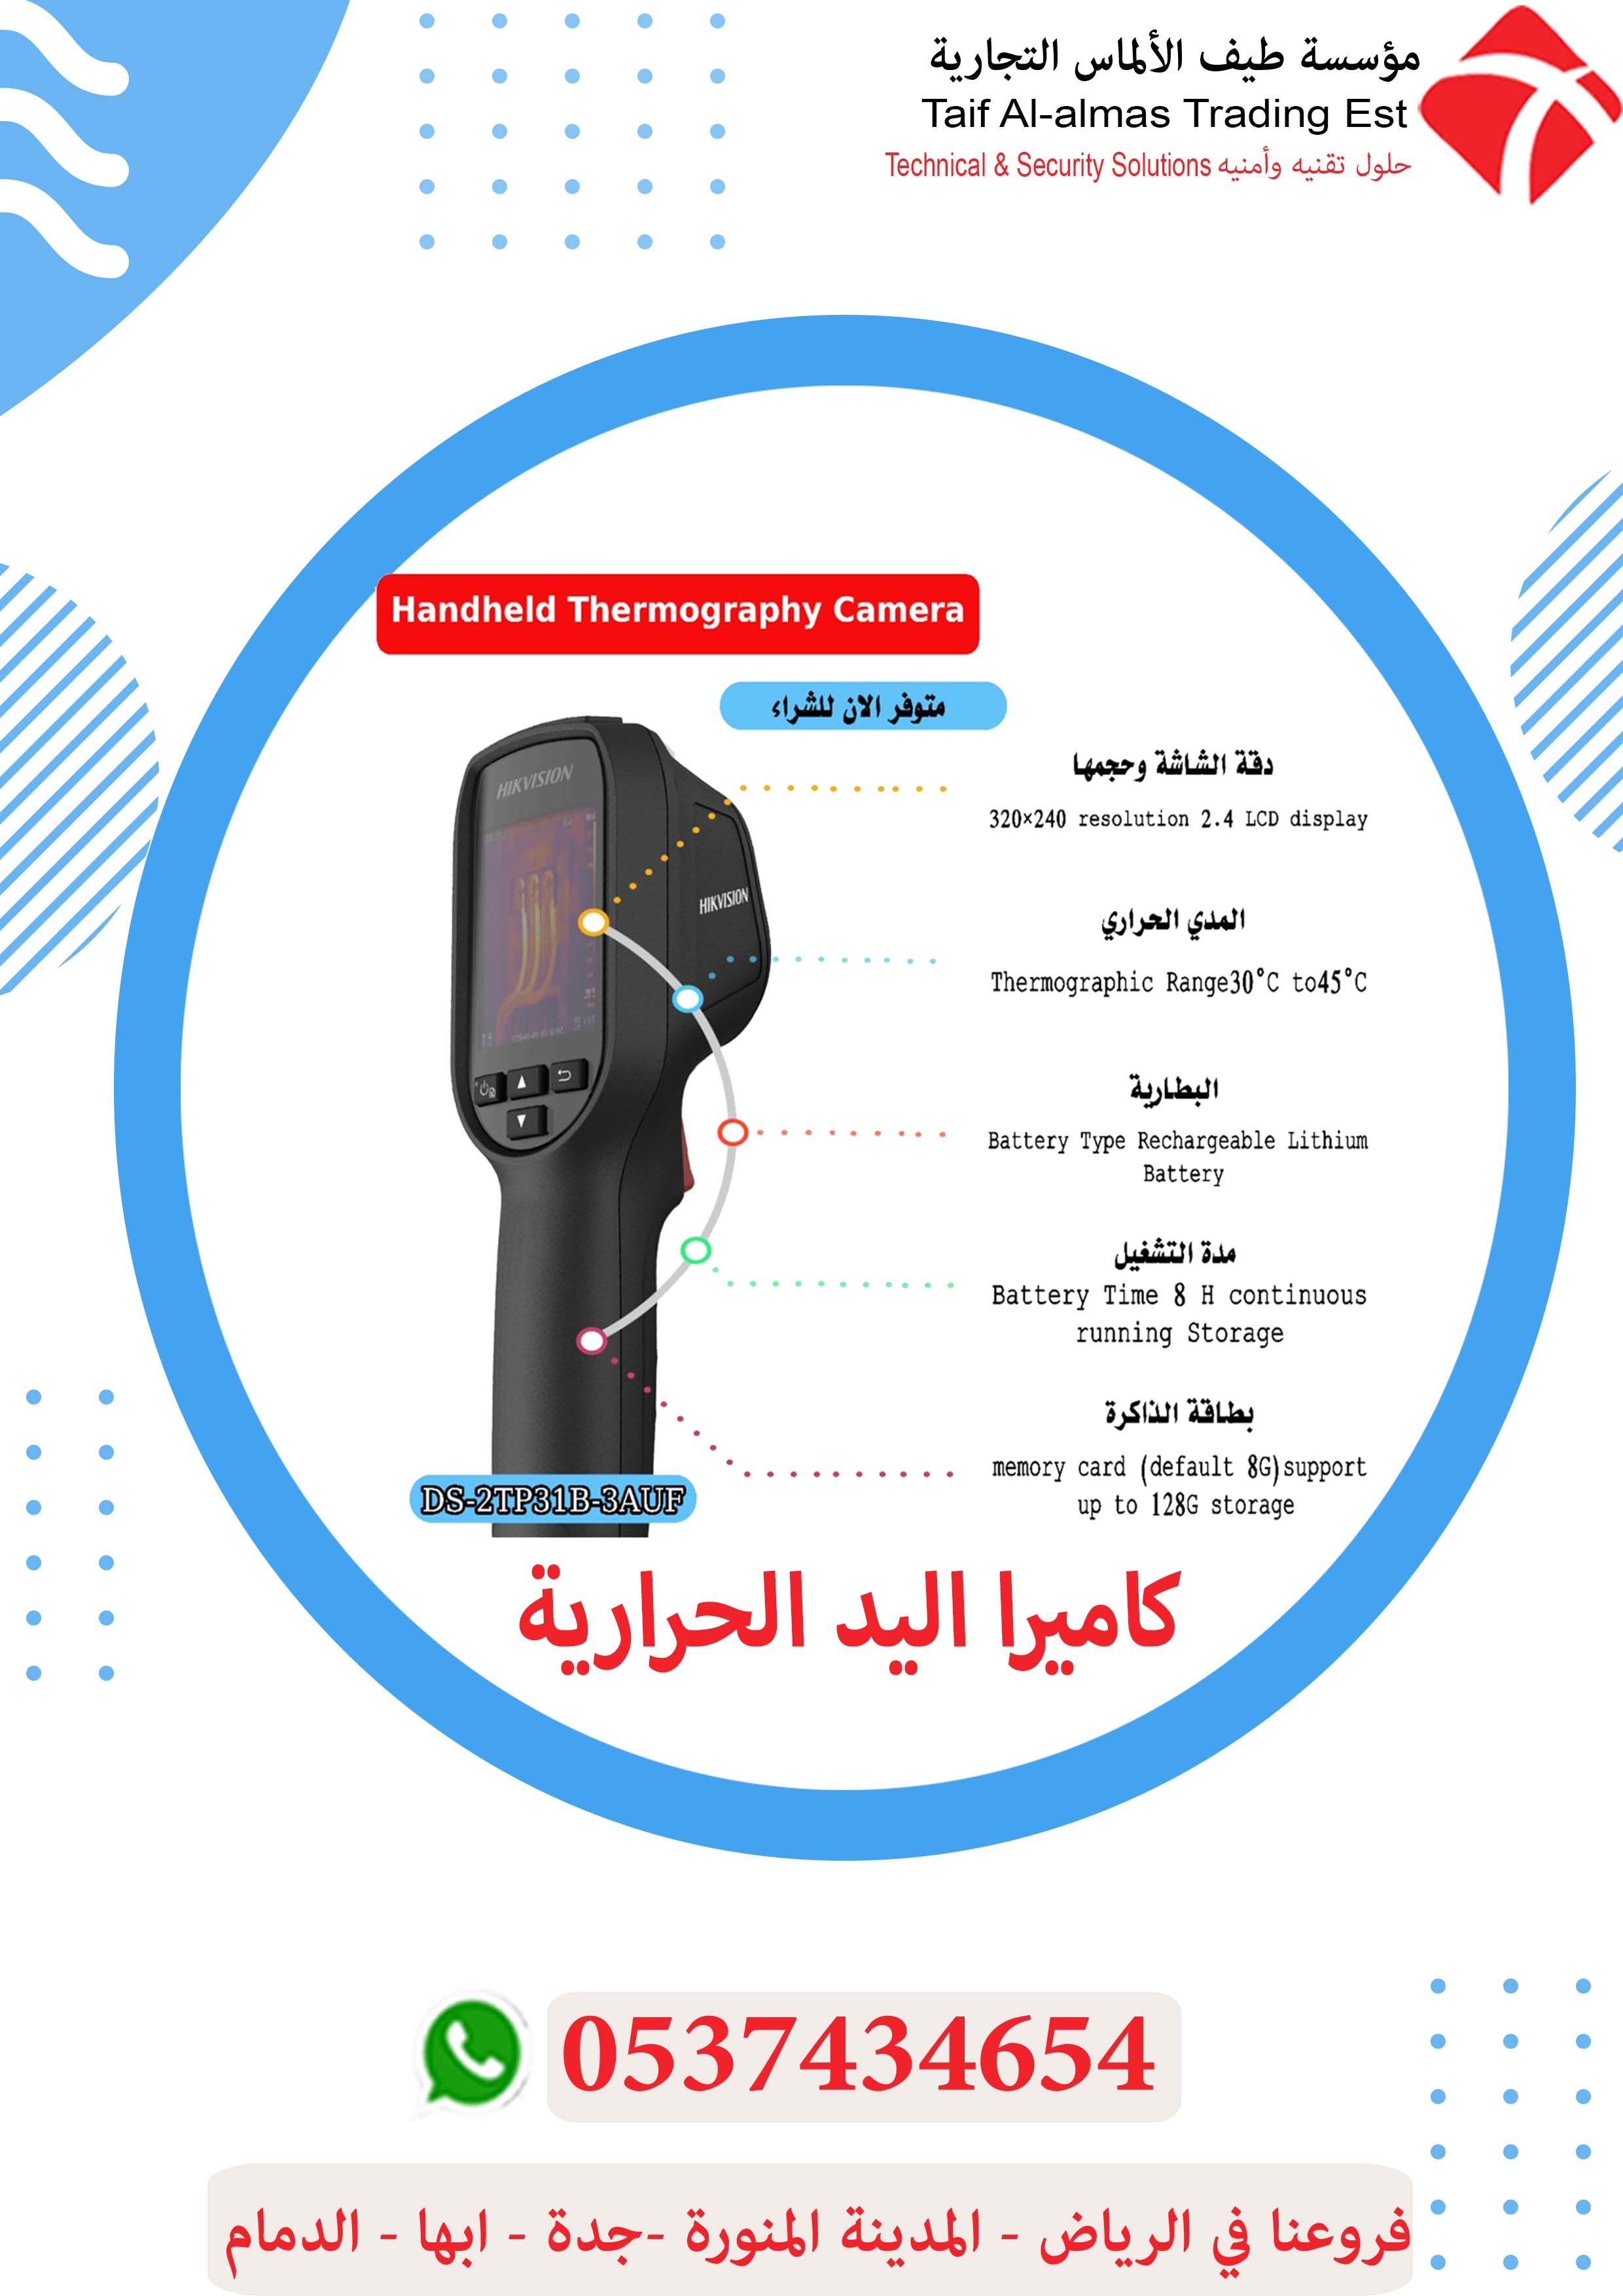 Hikvision كاميرات مراقبة او كاميرات حرارية Security Solutions Thermography Solutions